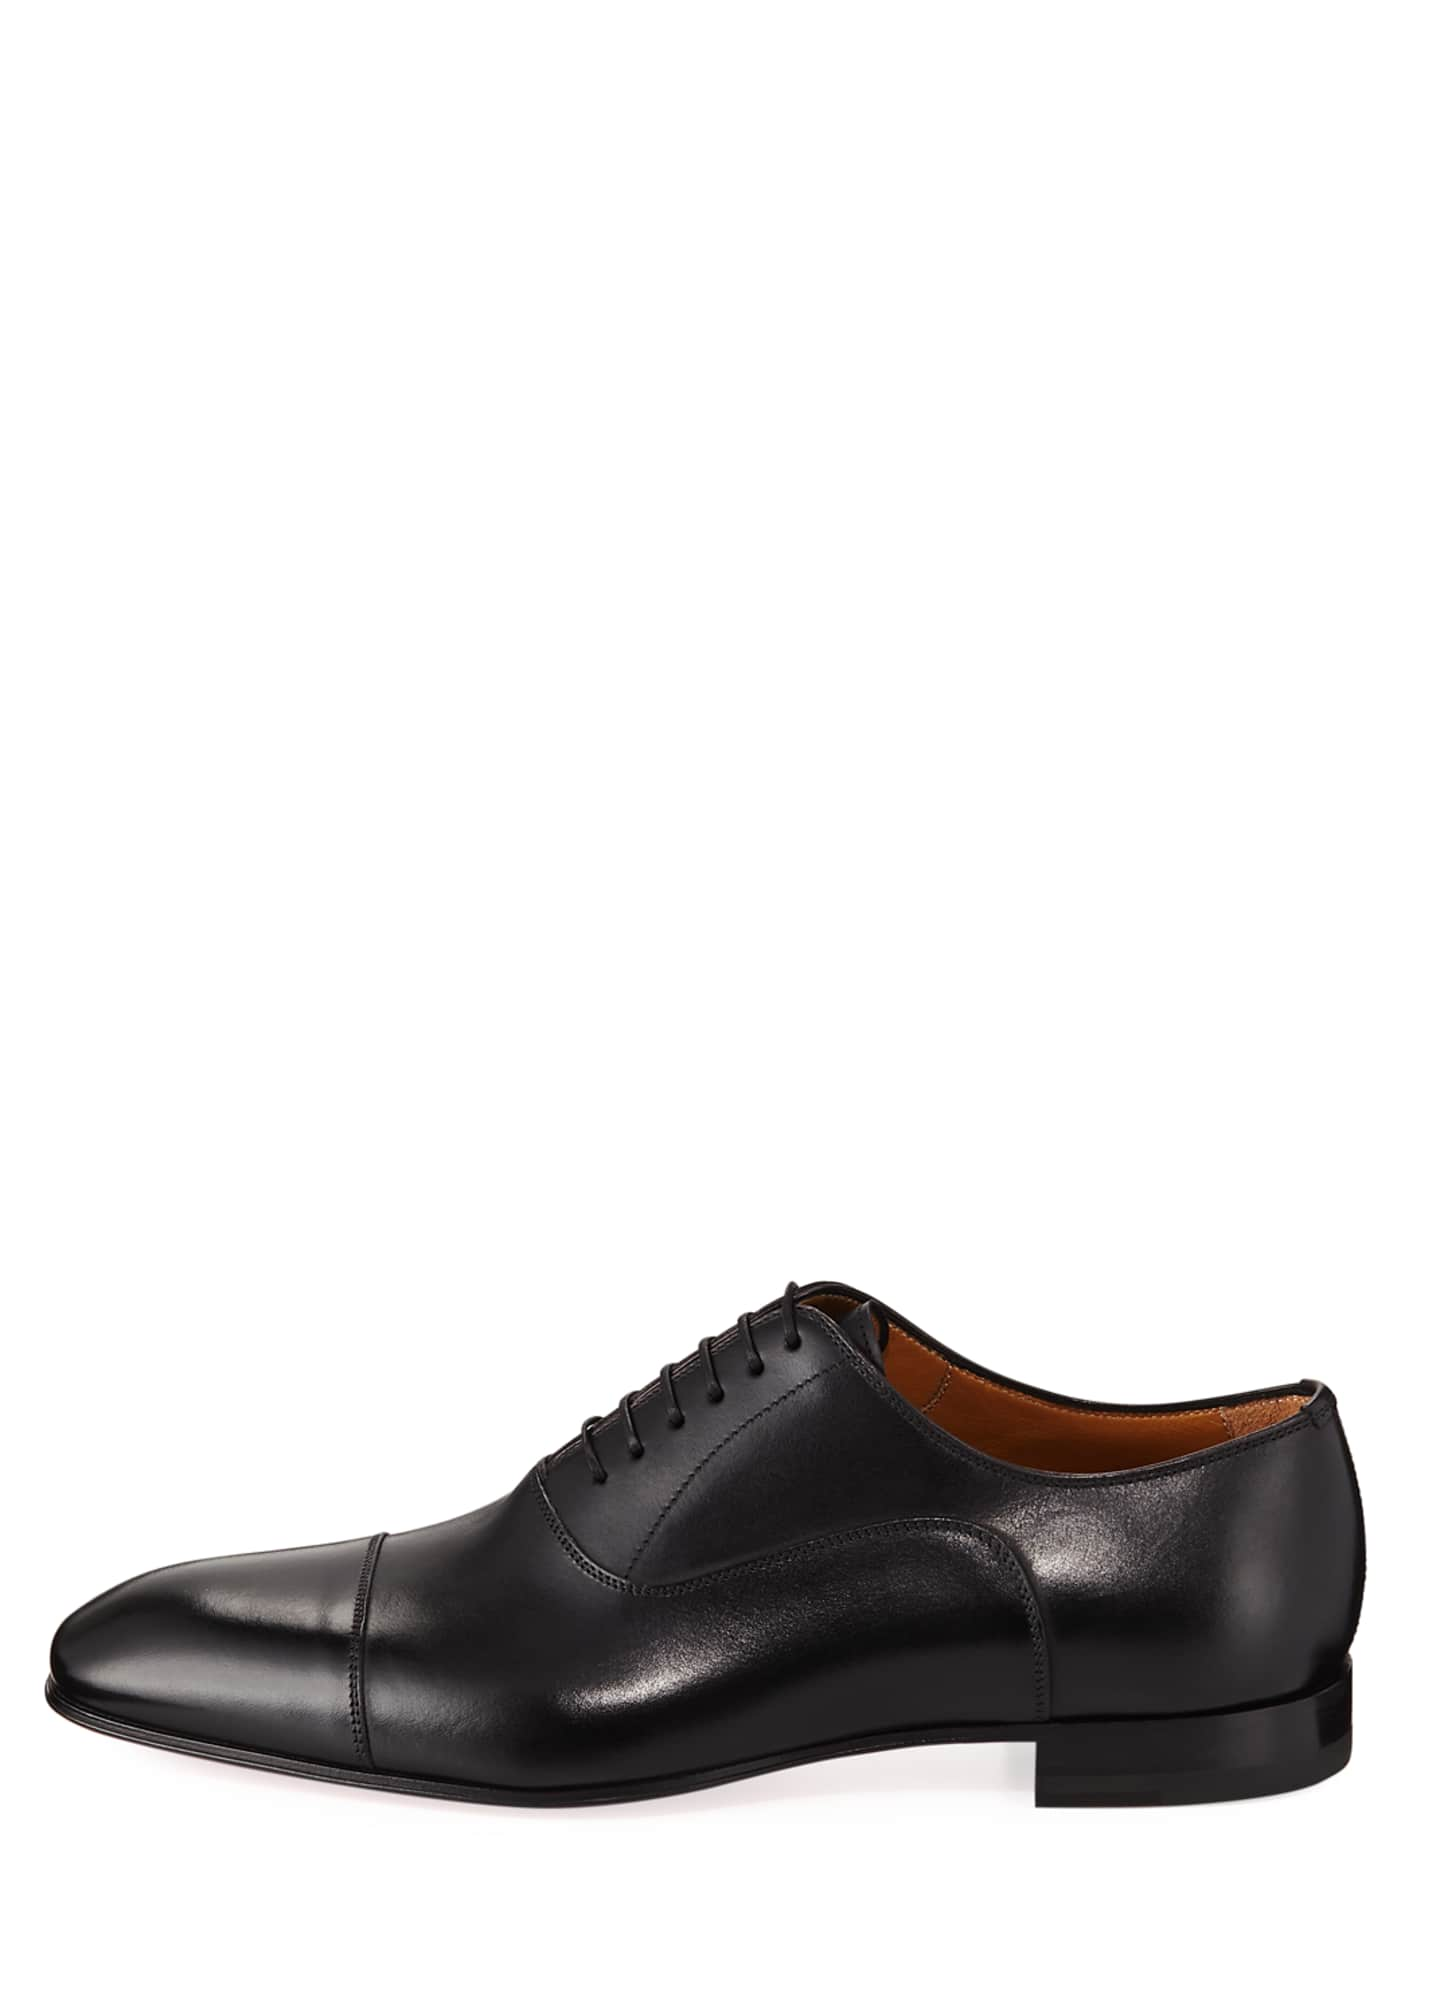 Image 3 of 3: Greggo Men's Lace-Up Leather Dress Shoes